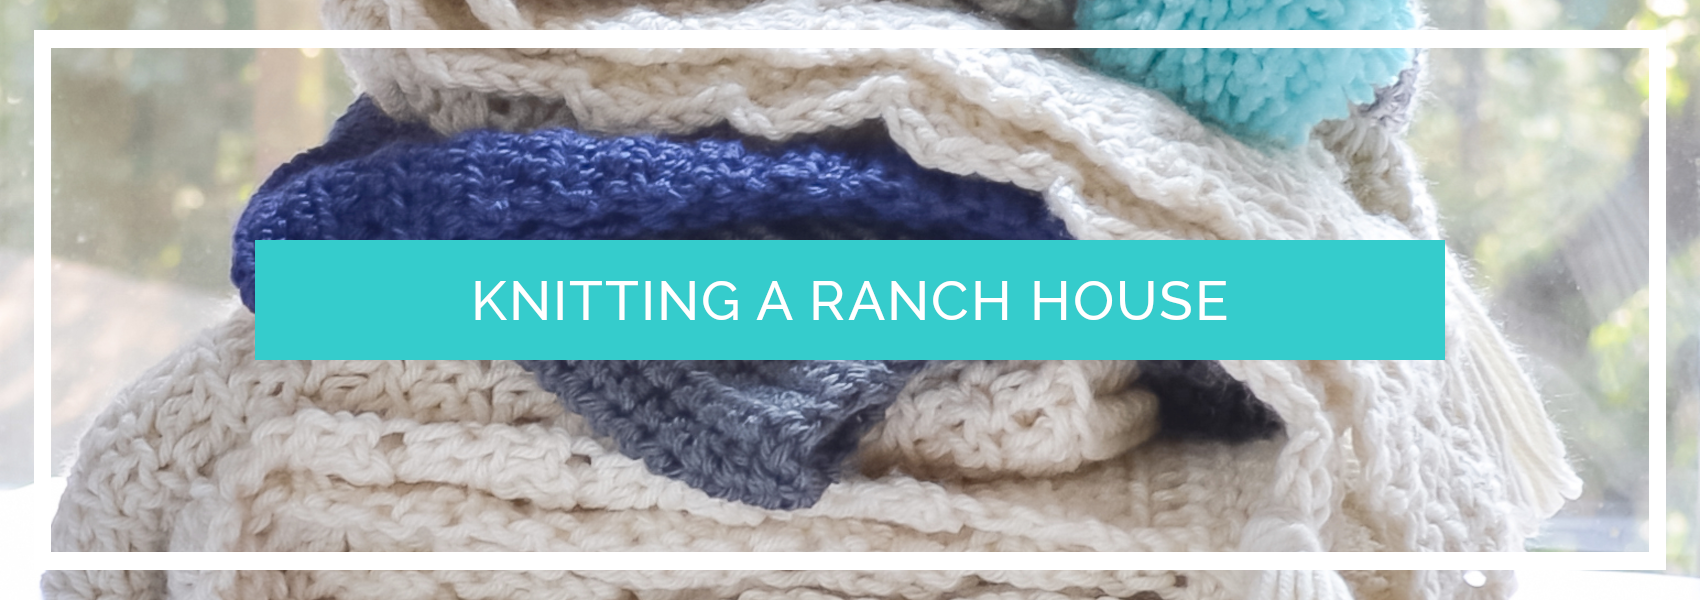 Knitting a ranch house - rallisonshop.com - About